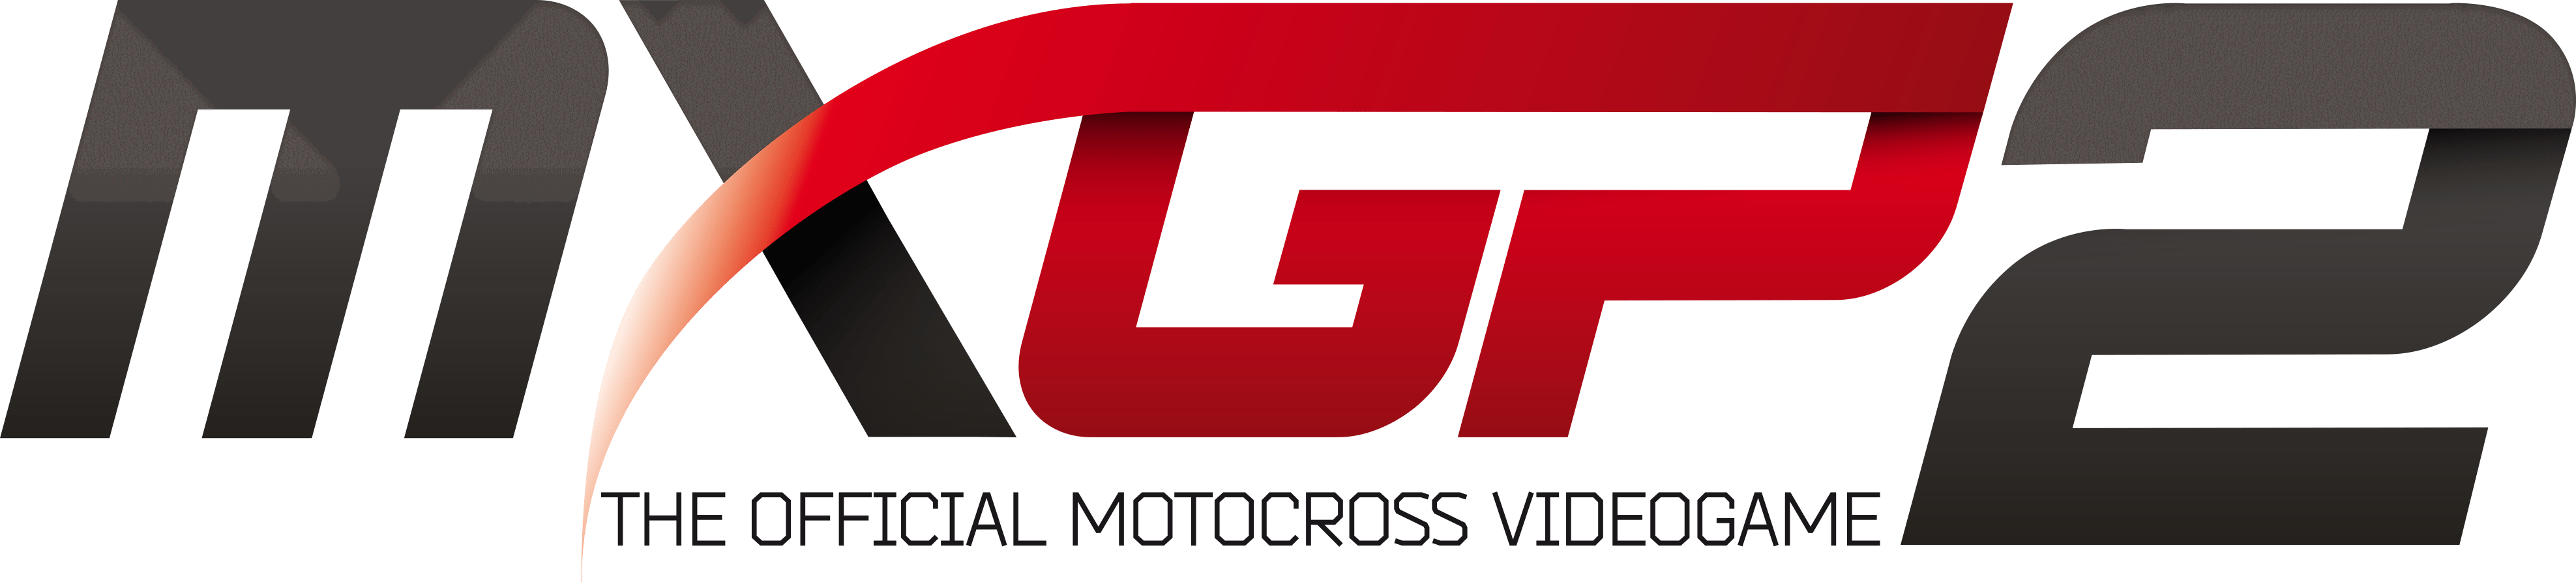 MXGP2 – The Official Motocross Videogame Available Now in North & Latin America